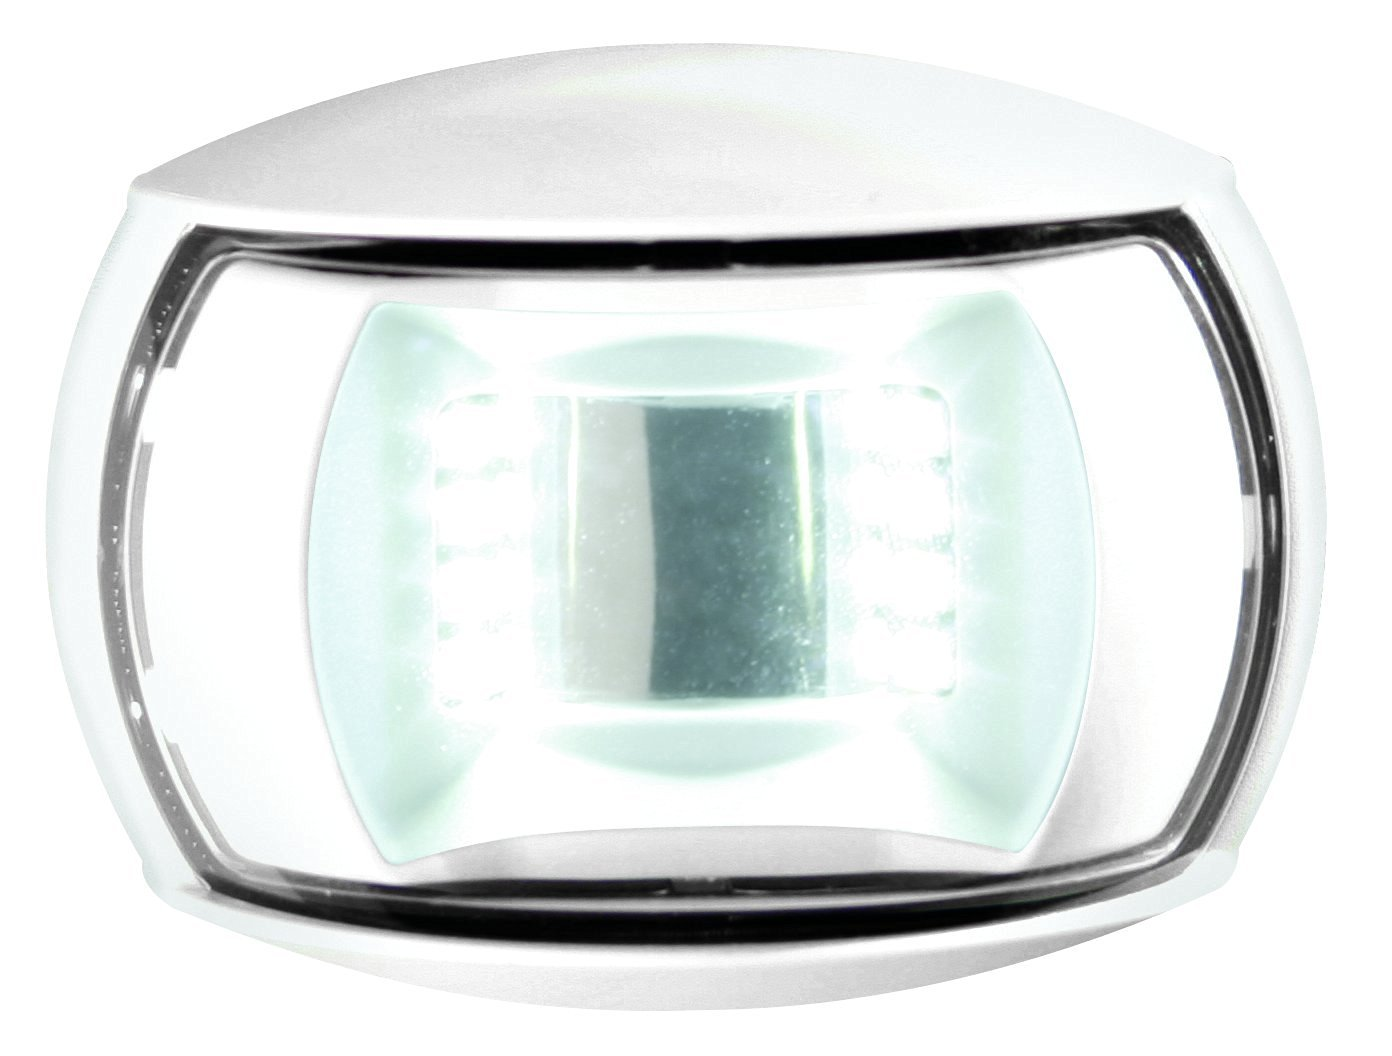 HELLA 980520511 '0520 Series' NaviLED Multivolt White 8-28V DC 2 NM Compact Stern Navigation Light with Clear Lens and White Shroud